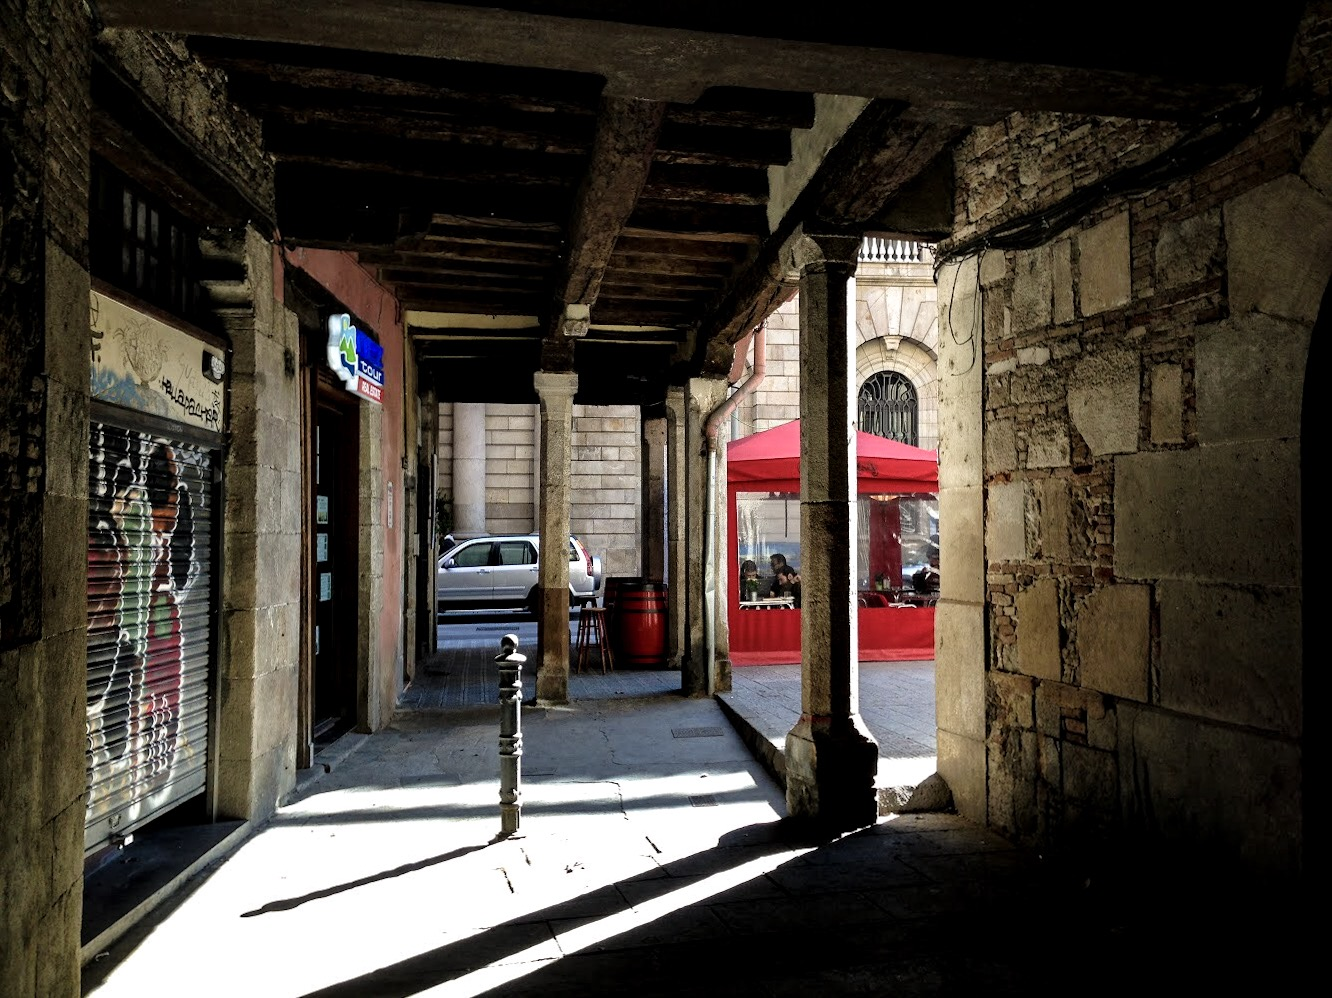 Sun and shadows in the backstreets of Raval, Barcelona